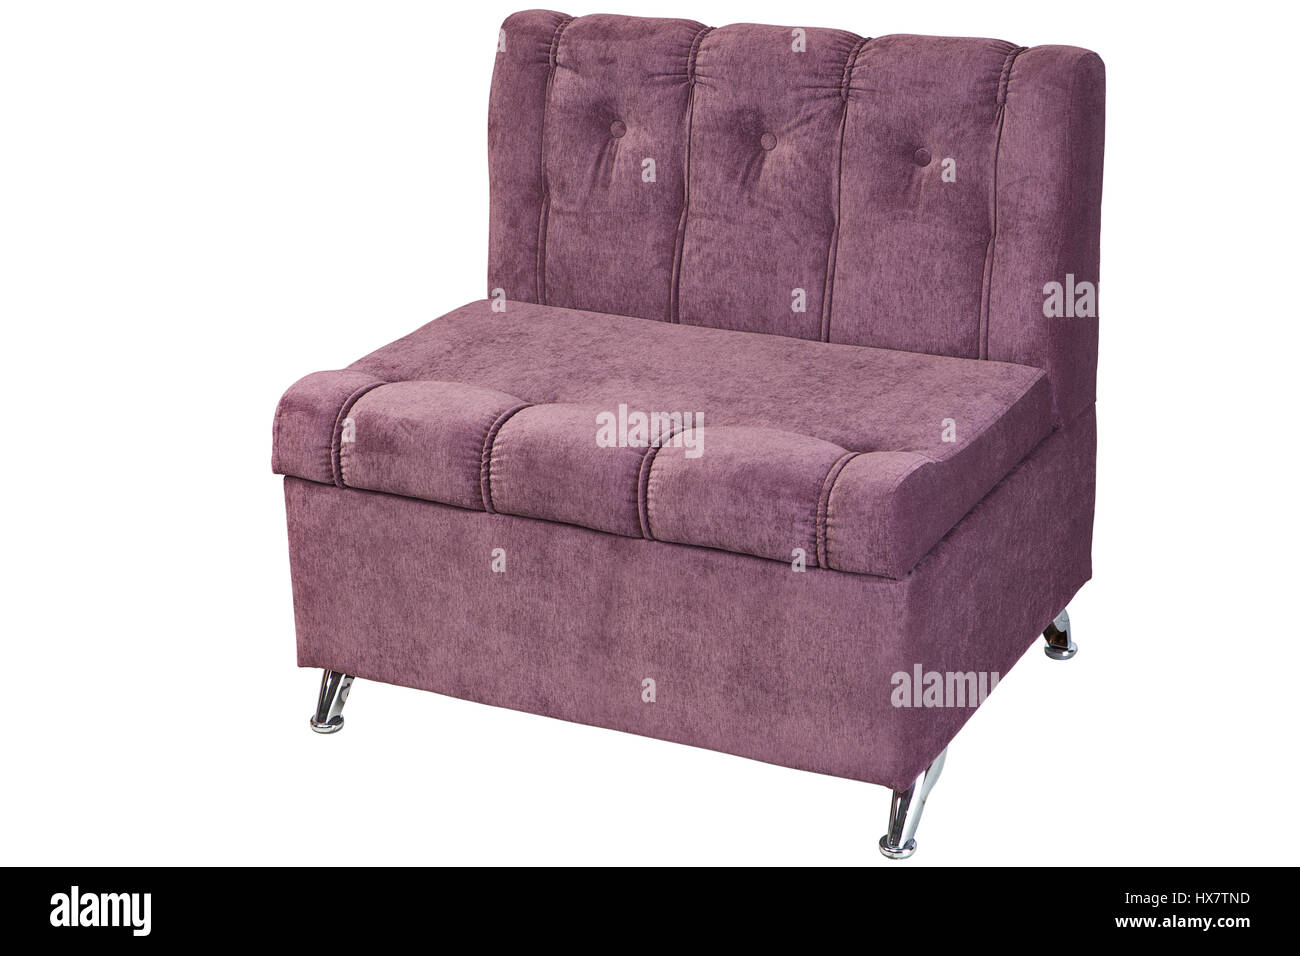 Folding bed chair - Folding Bed Chair Upholstered Light Purple Fabric Isolated On White Background With Clipping Path